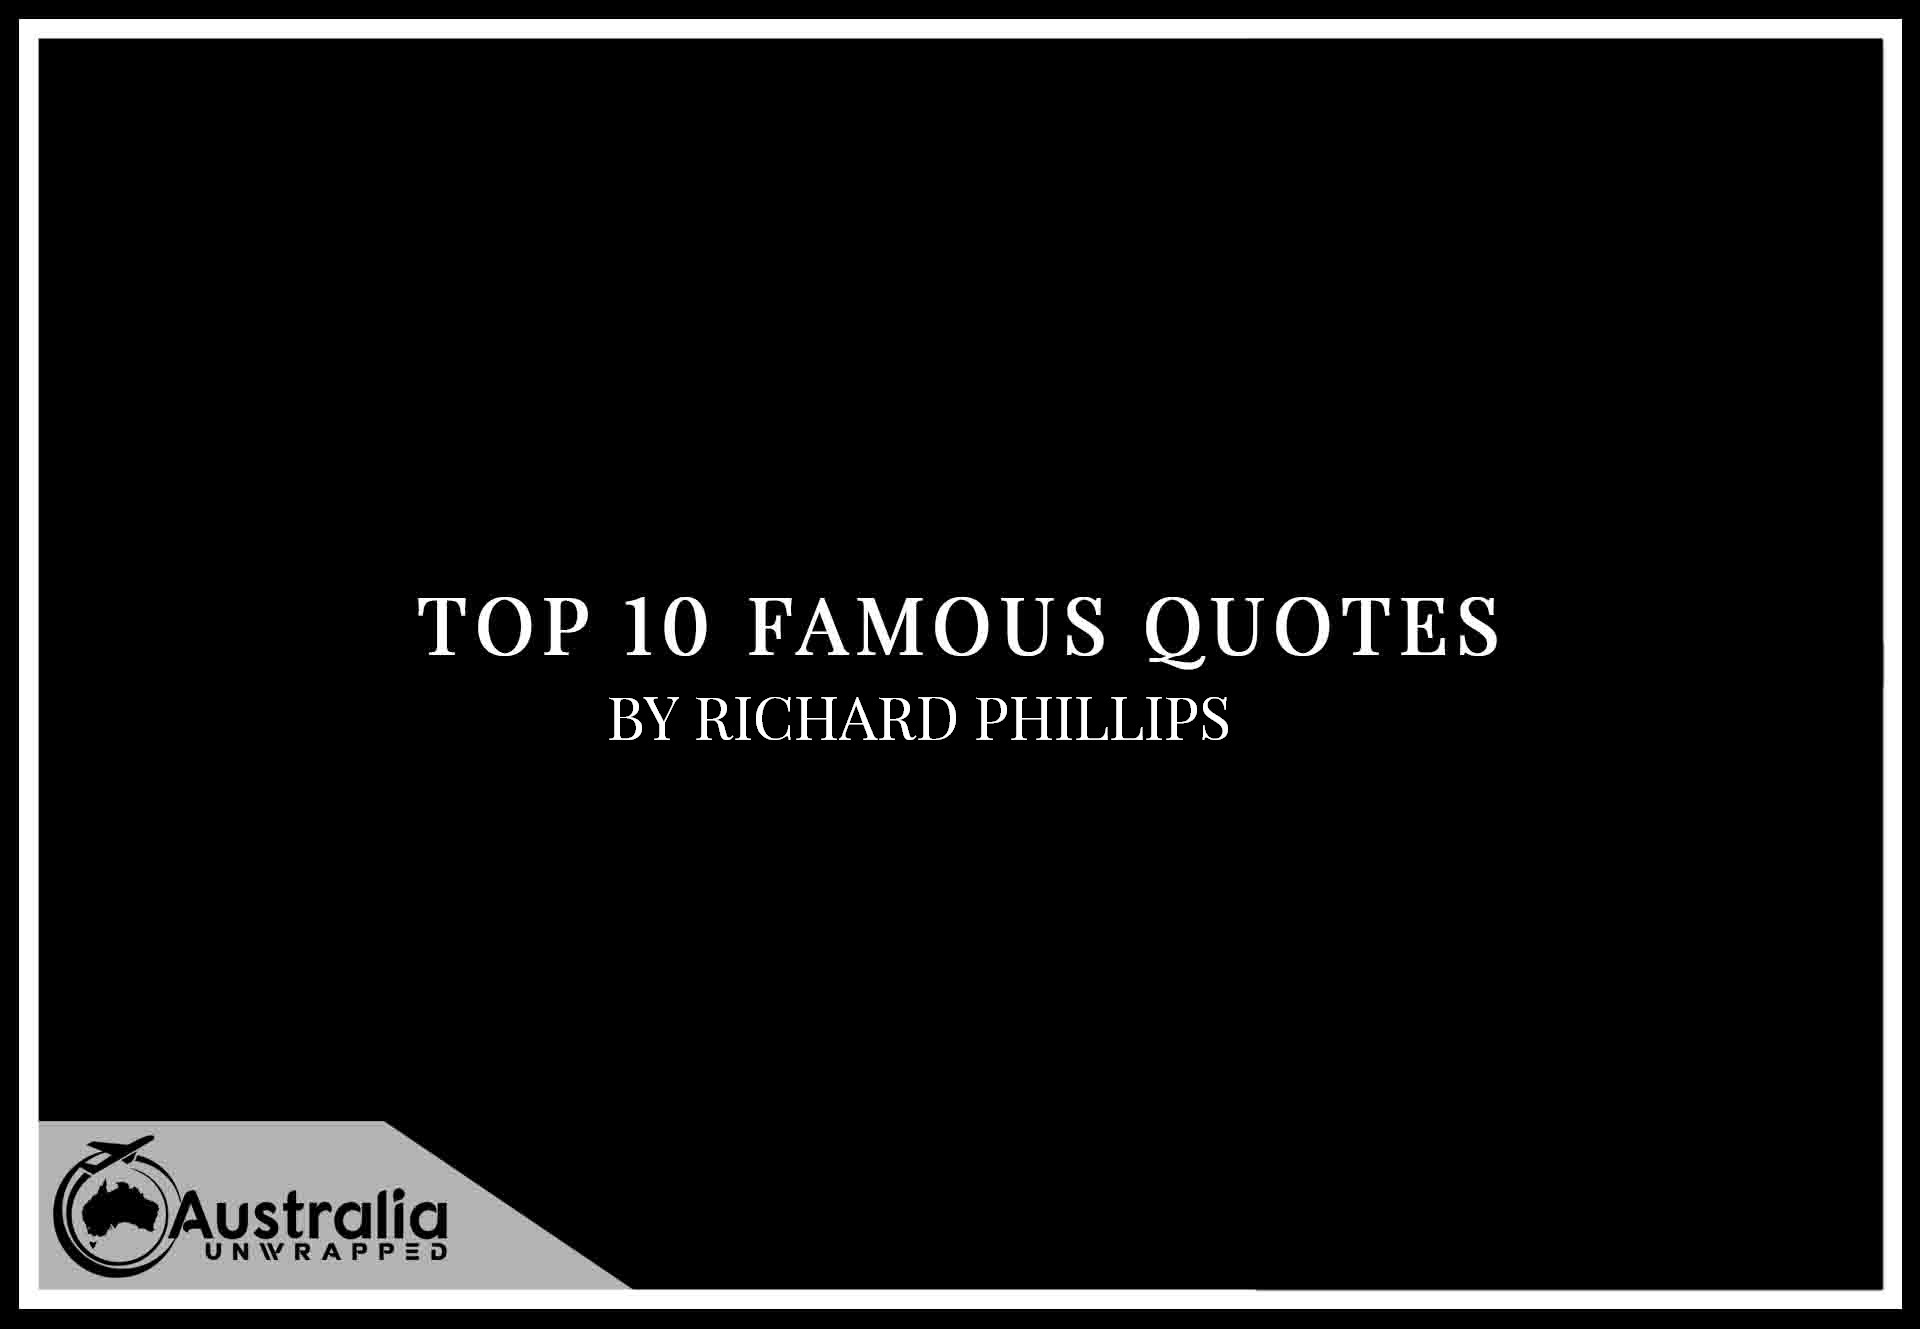 Richard Phillips's Top 10 Popular and Famous Quotes